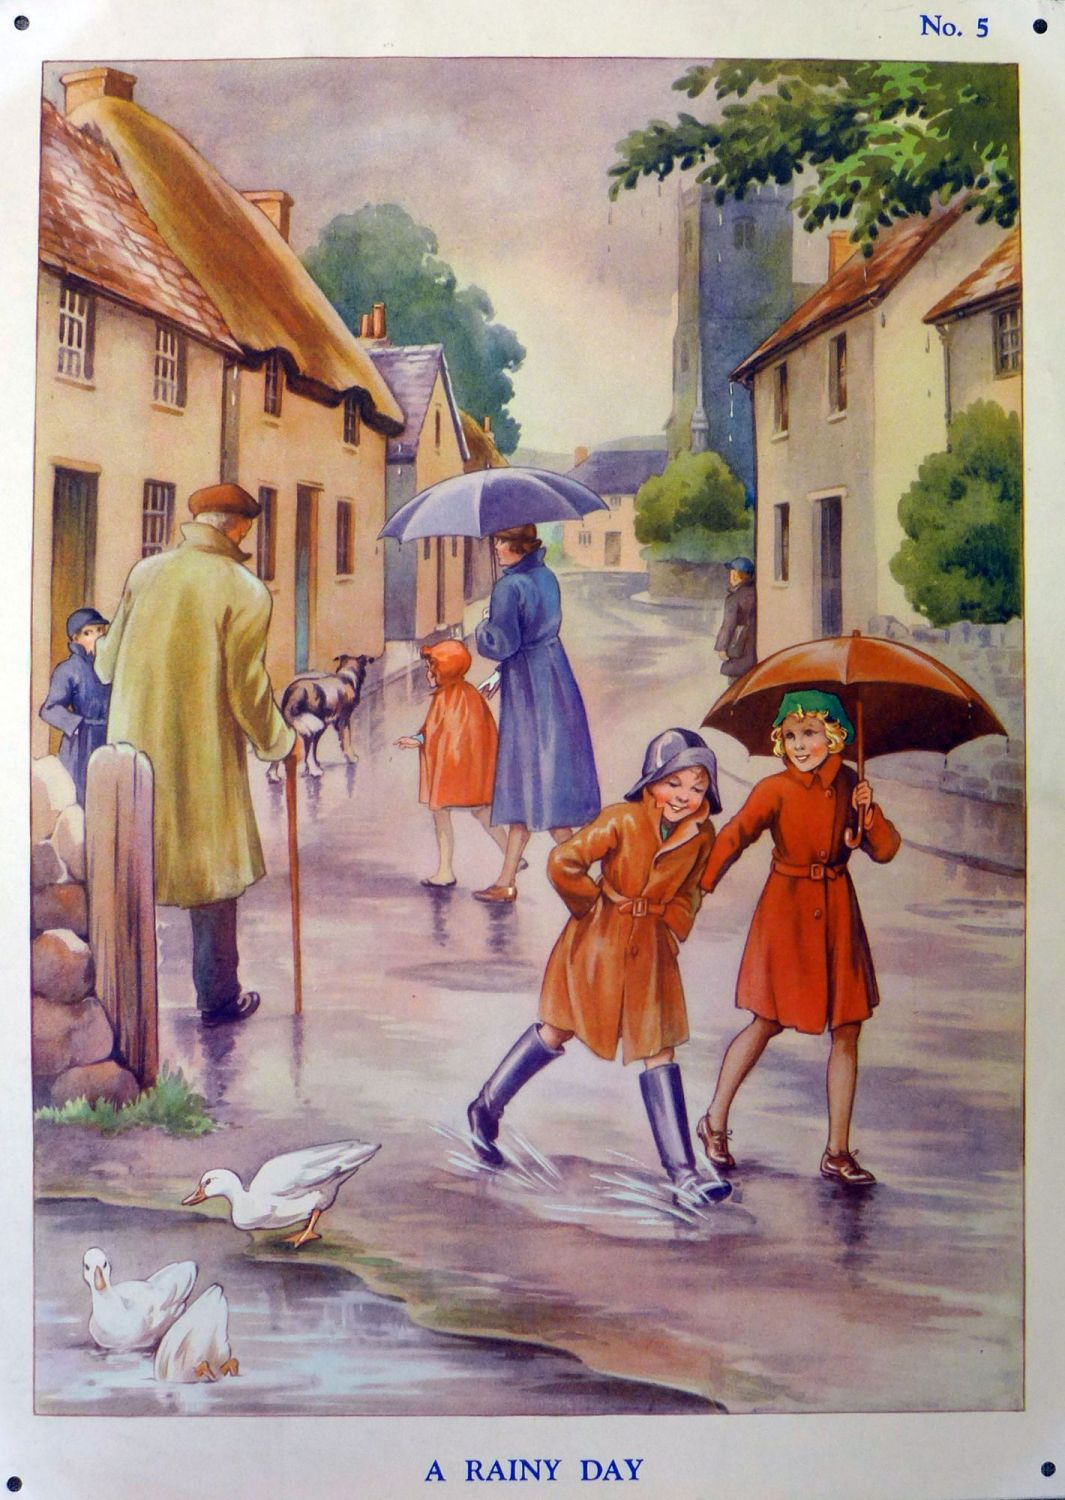 Vintage School Poster 1938 - A Rainy Day